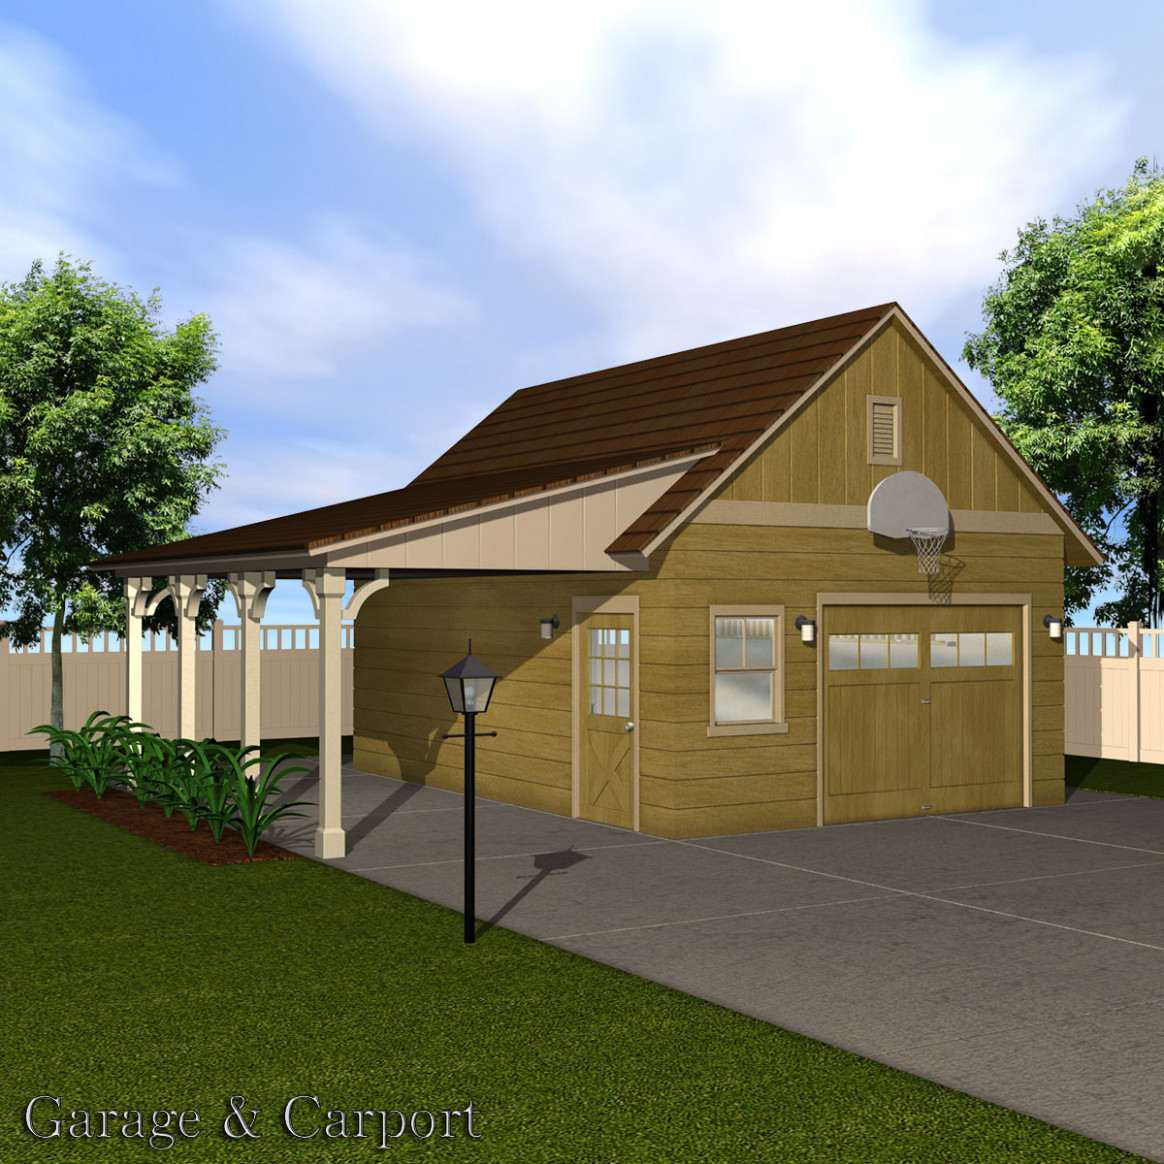 Garage & Carport Set 8D Models Richabri Carport Vs Garage